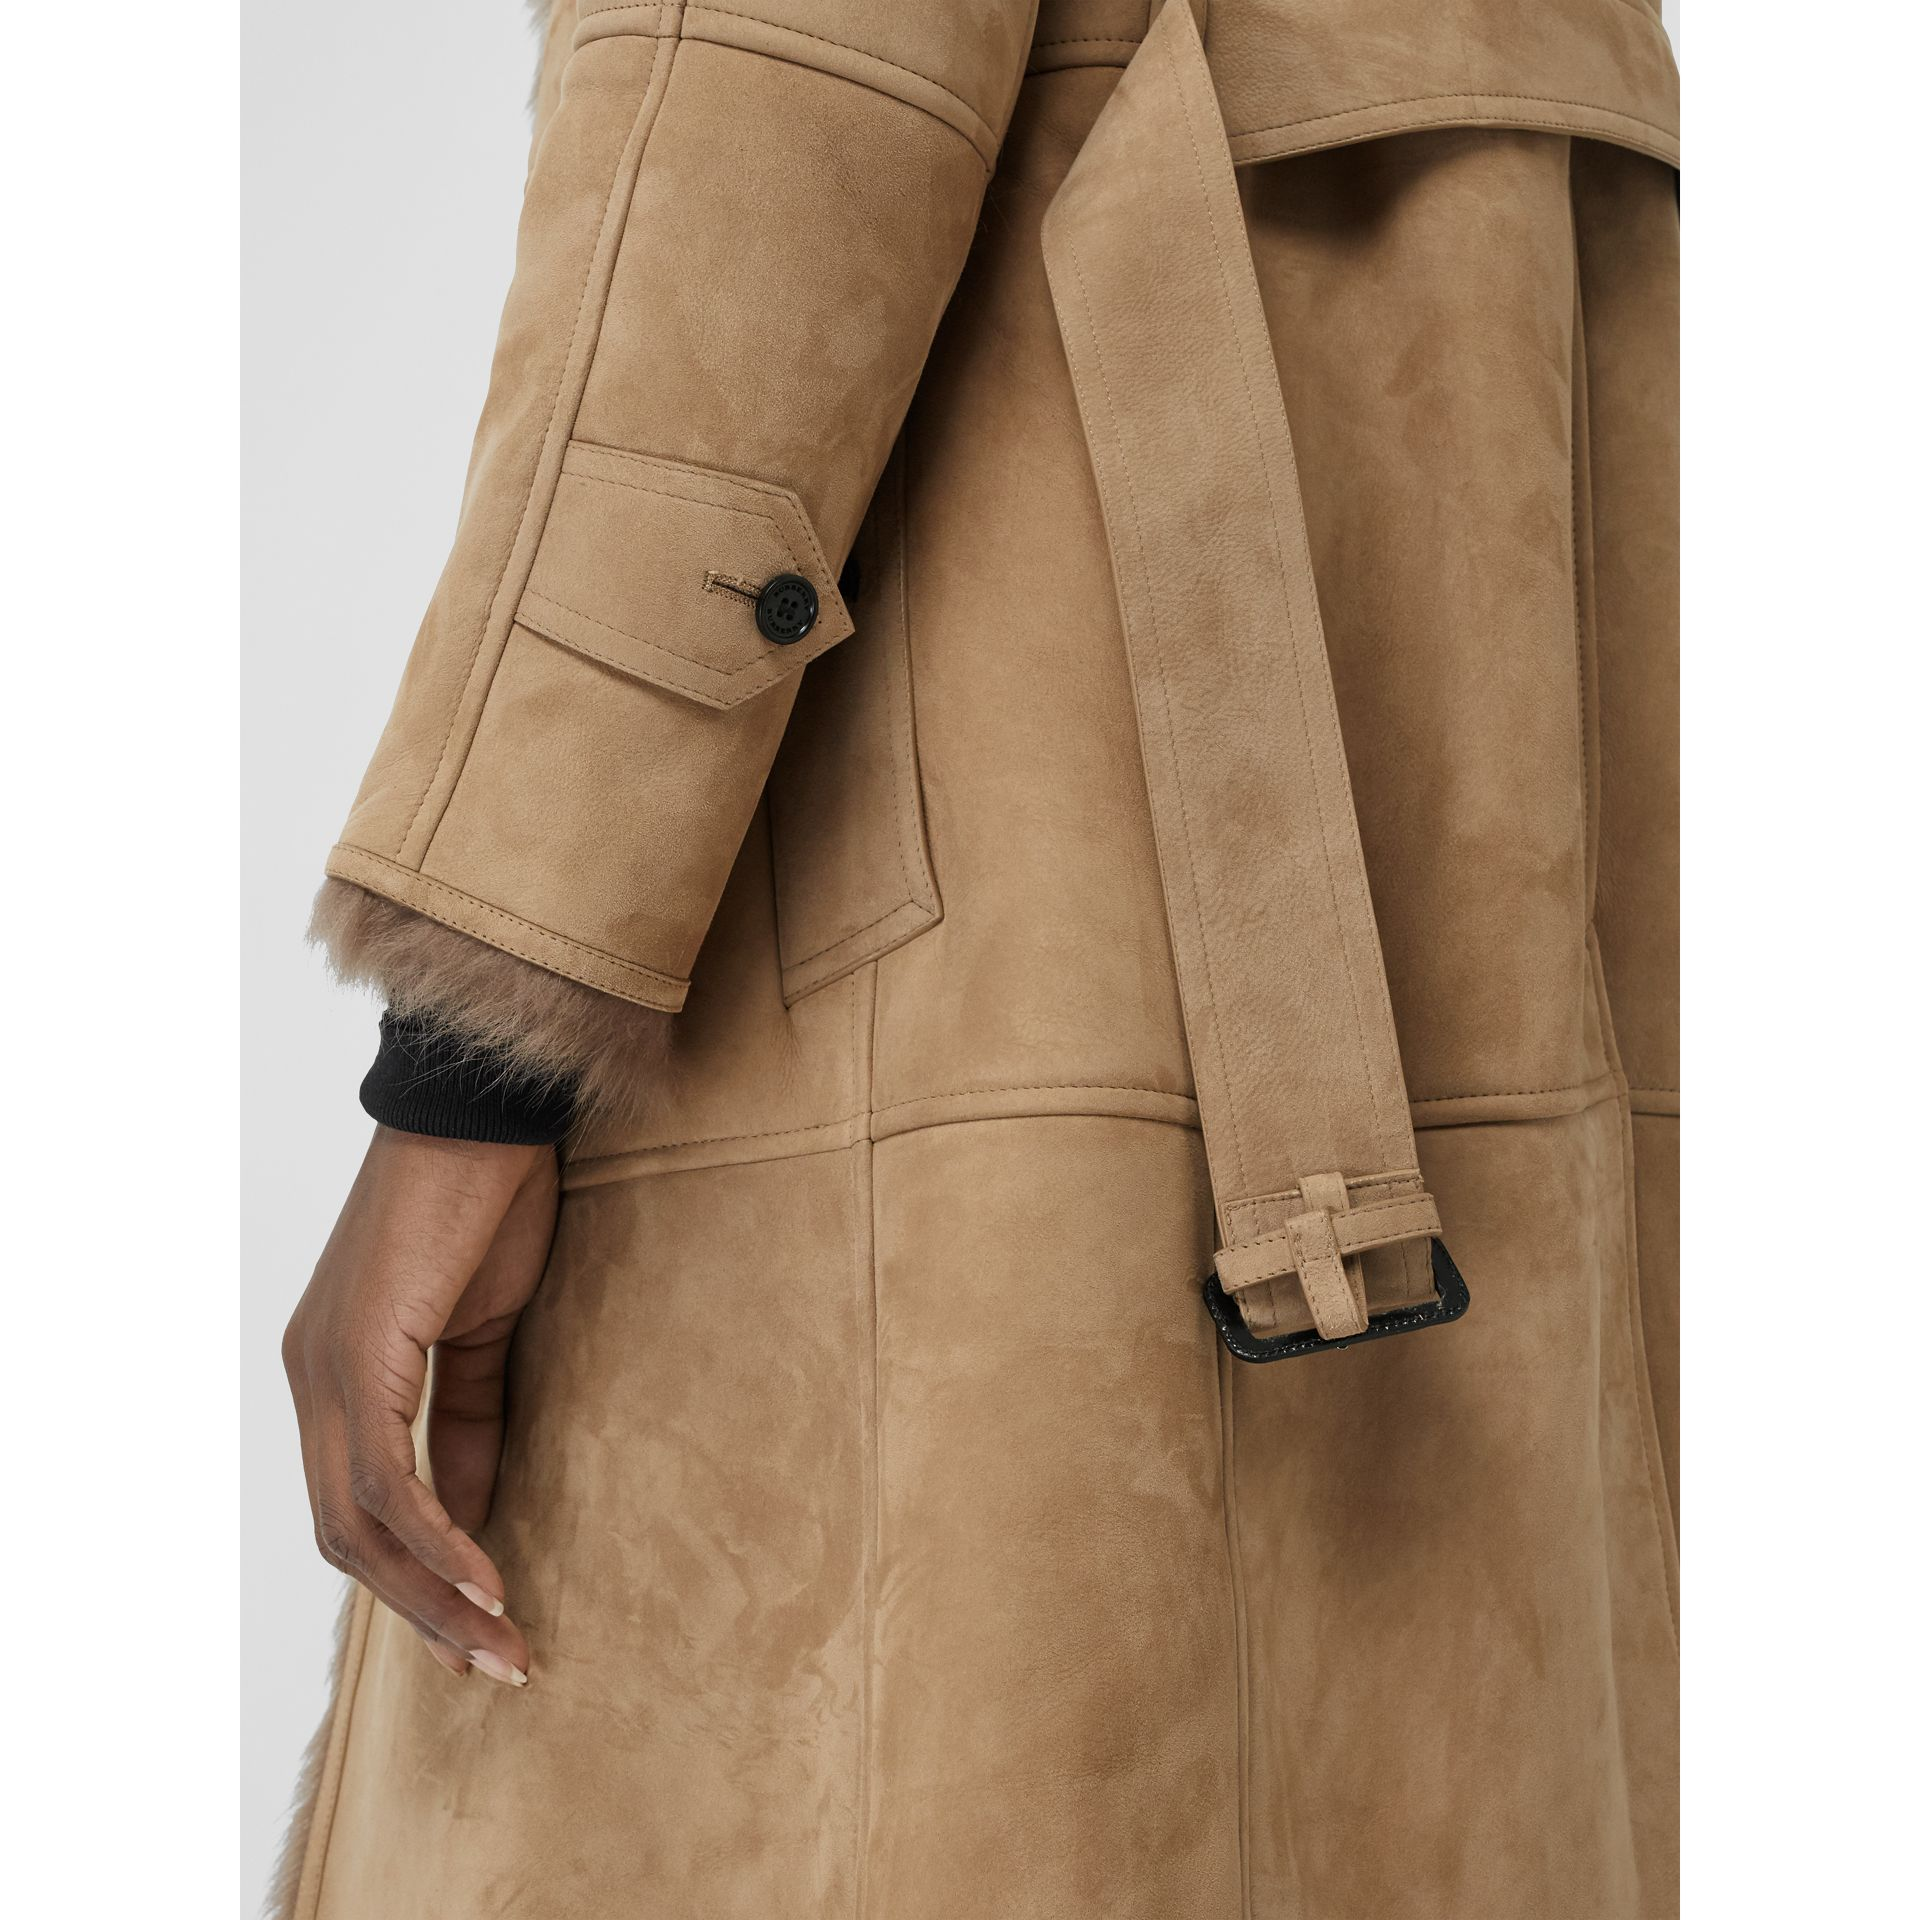 Paletot en shearling (Camel) - Femme | Burberry - photo de la galerie 1